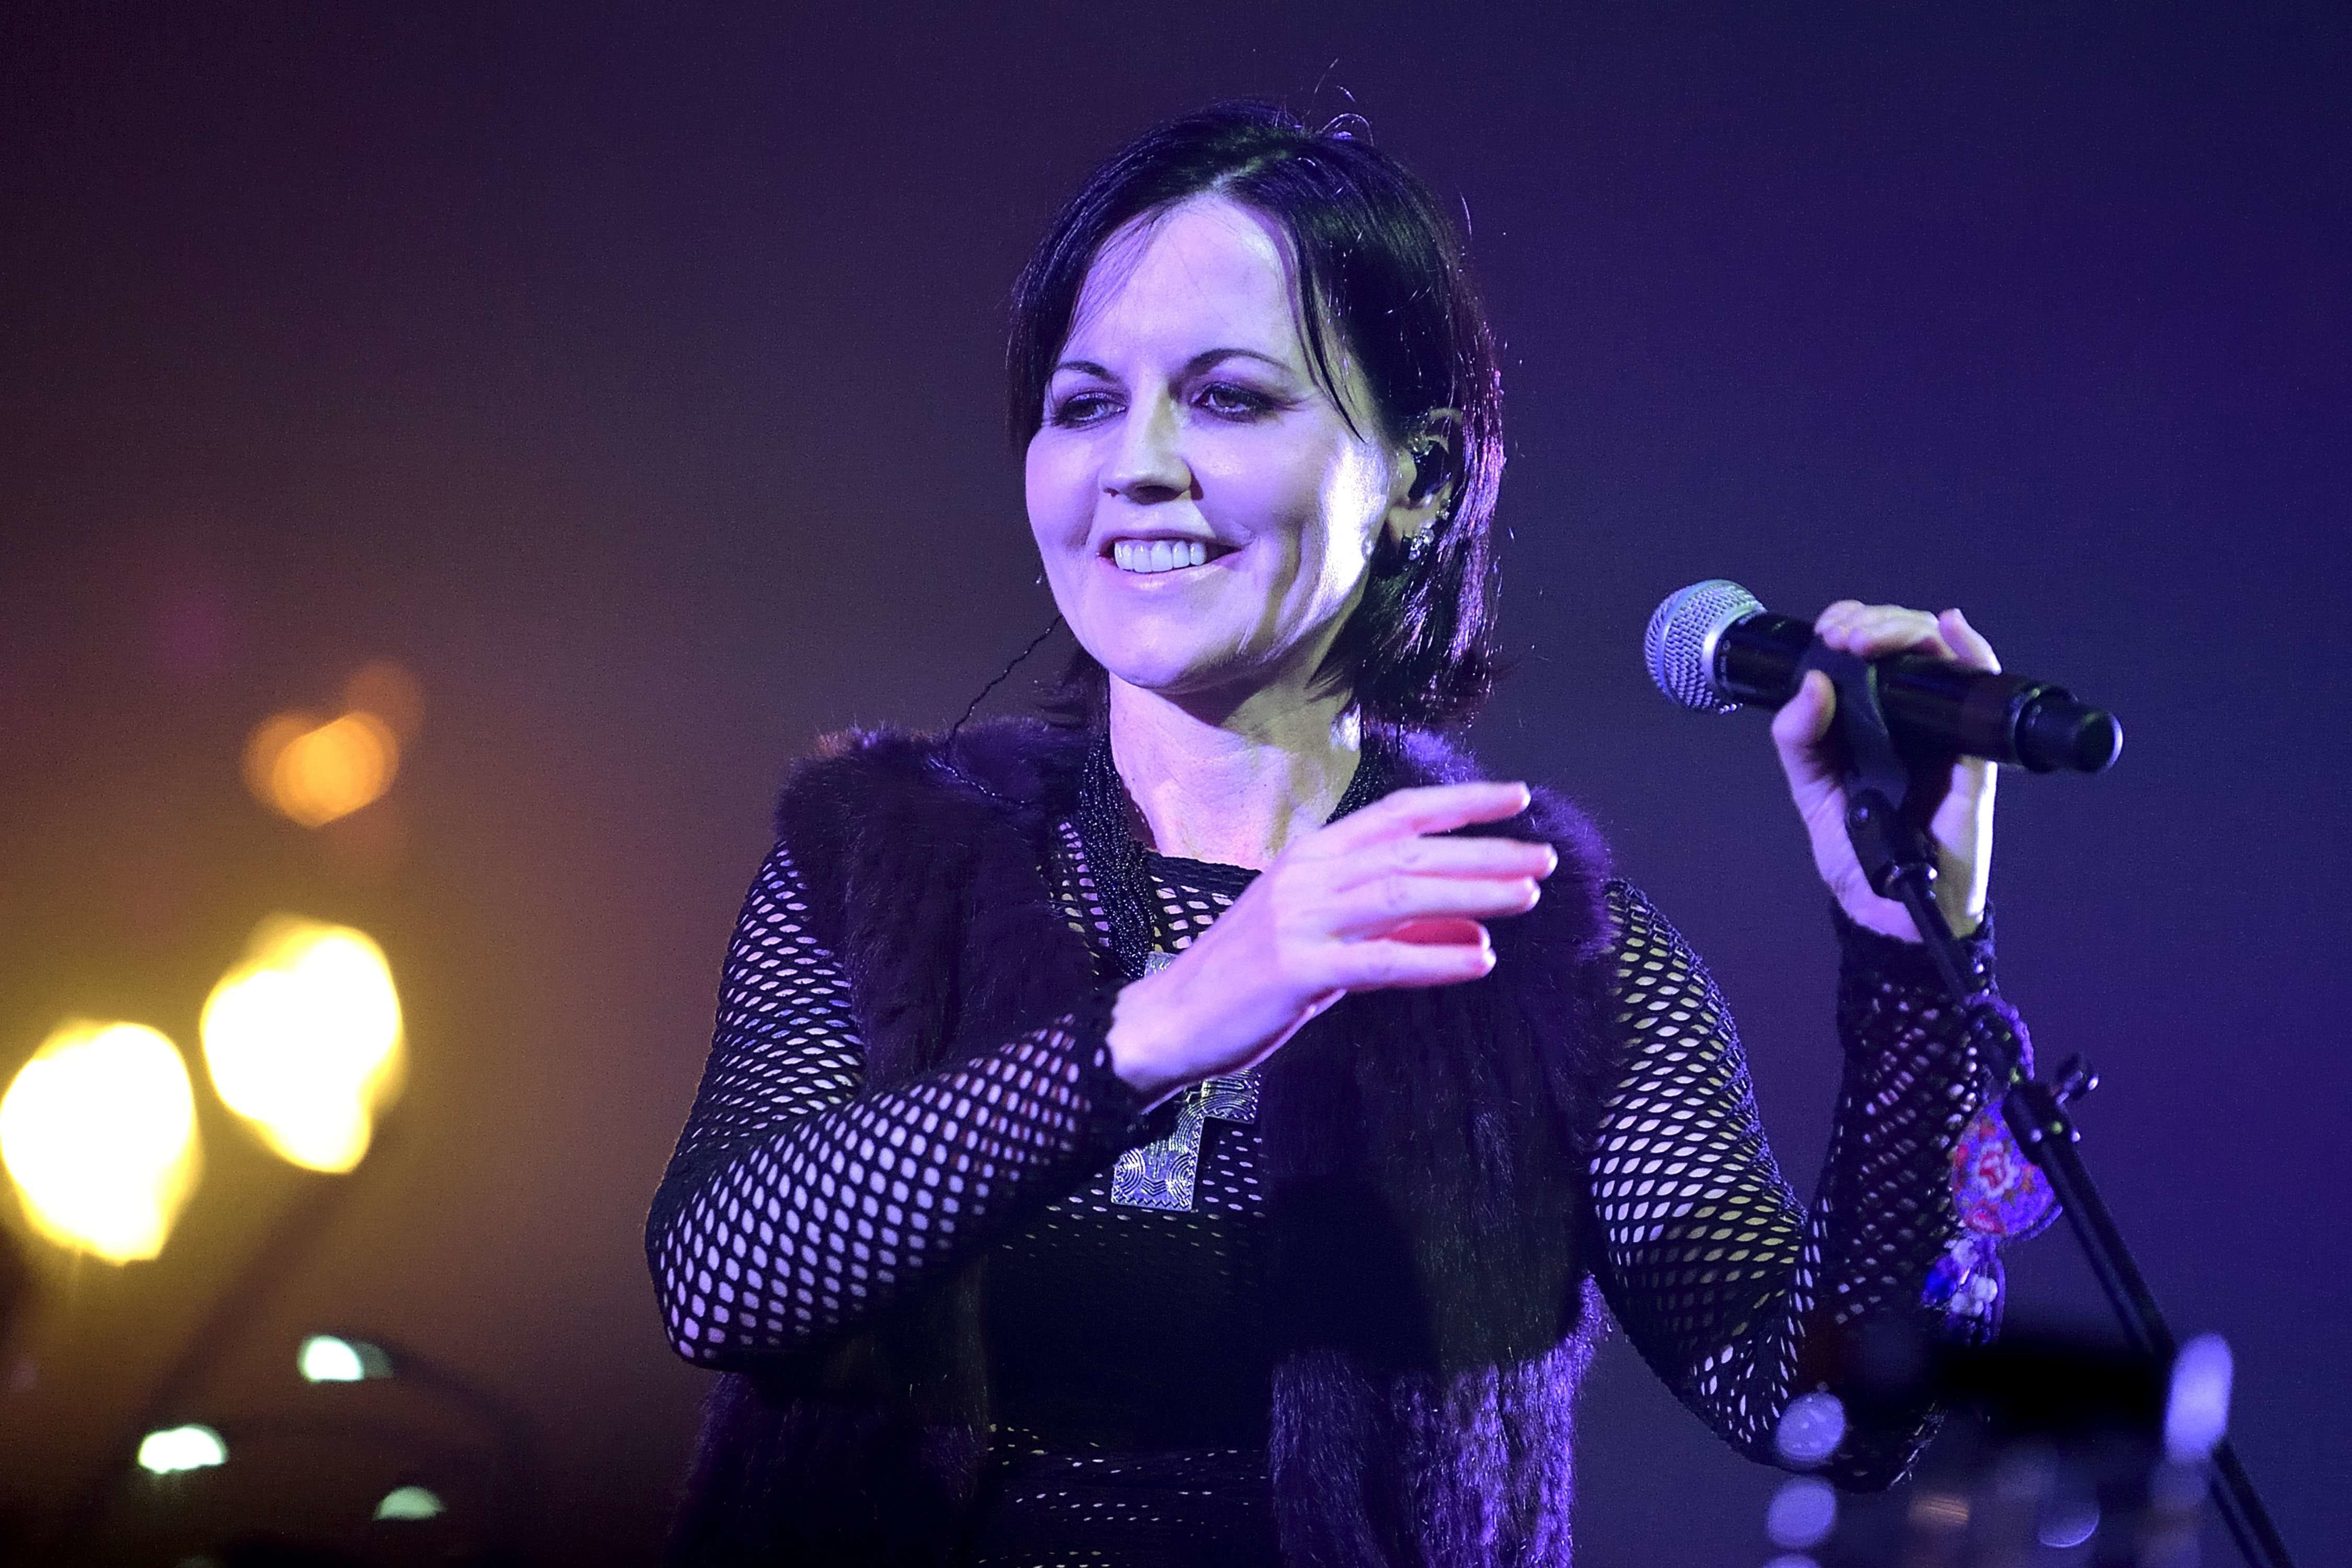 Dolores O'Riordan Was Due To Re-record A New Version Of 'Zombie' This